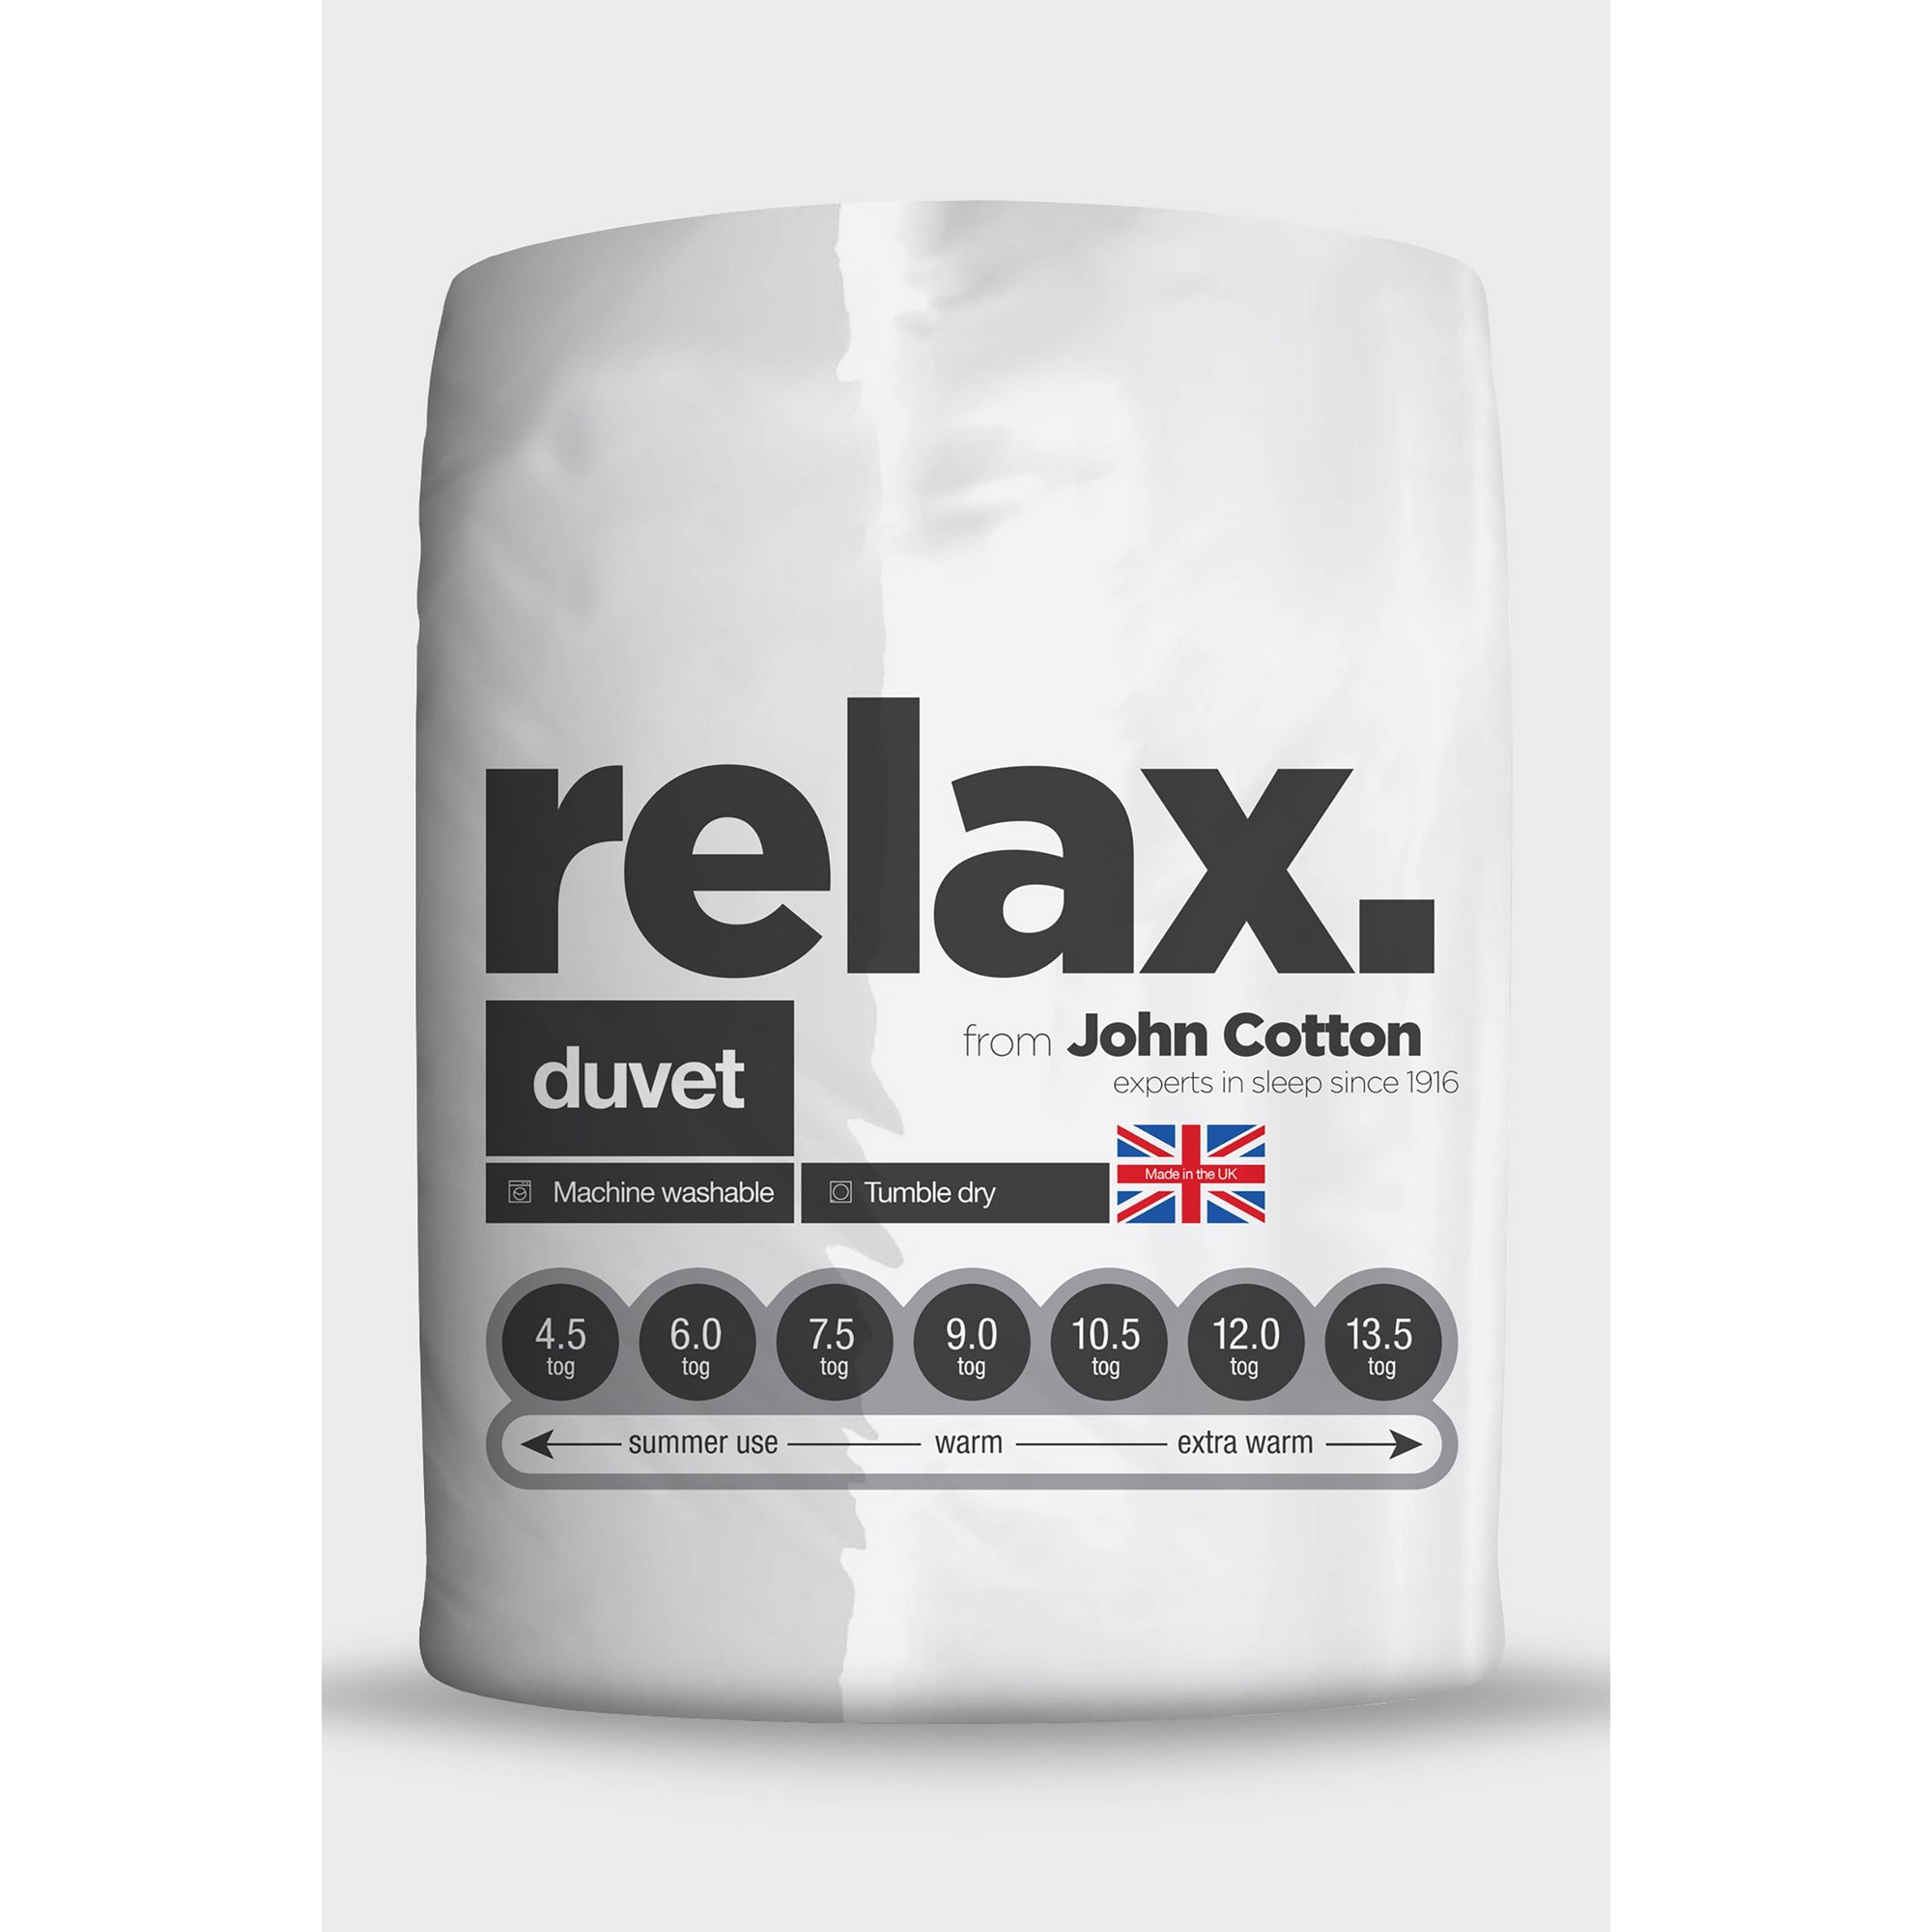 Image of Relax Duvet 13.5 Tog